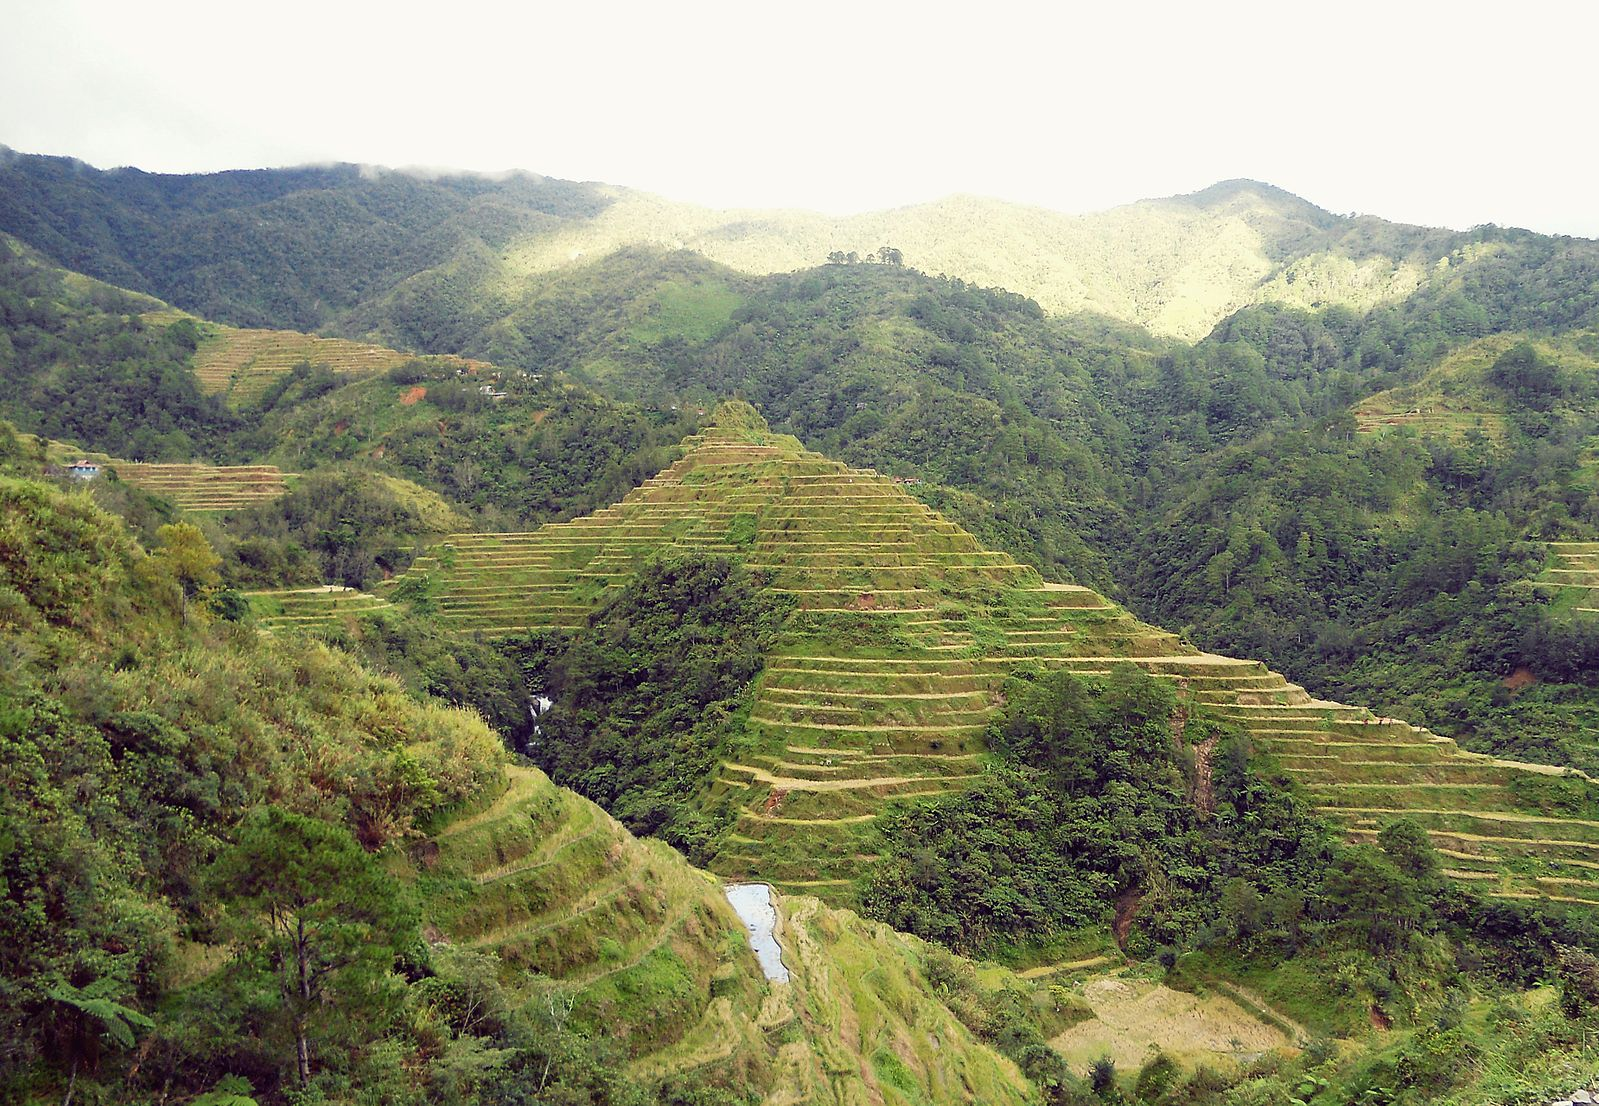 Banaue_Rice_Terraces,_Ifugao